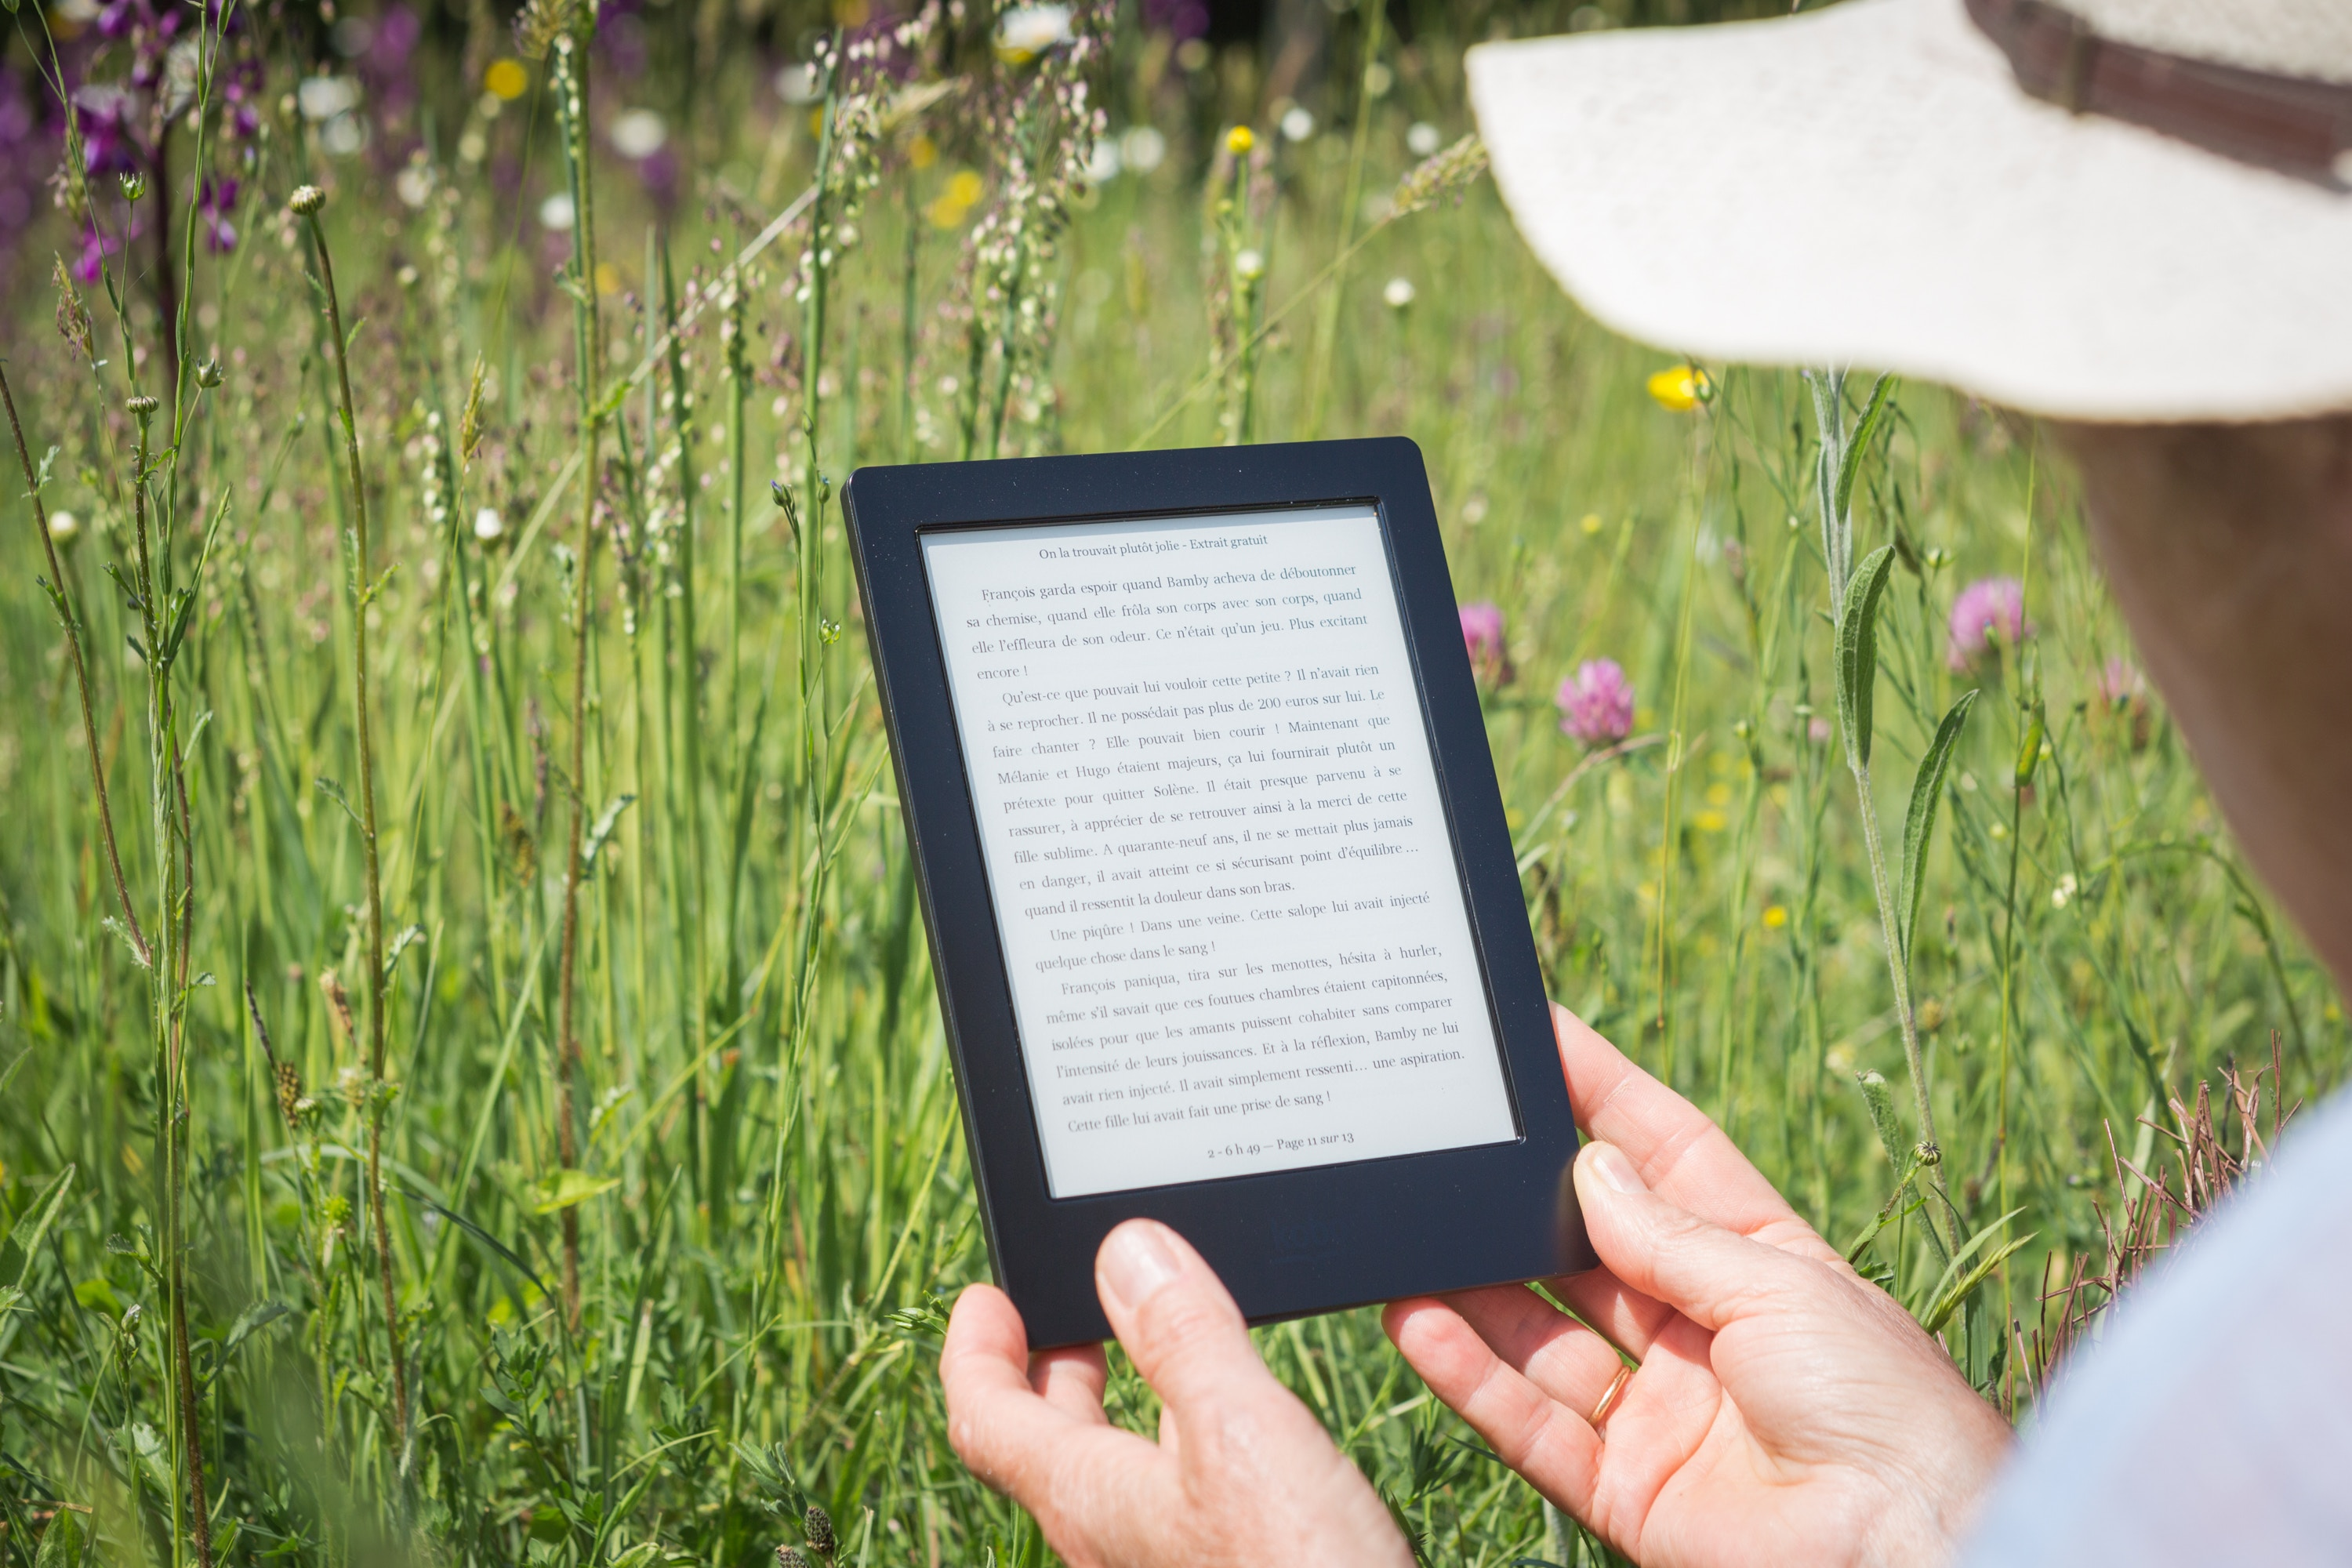 Person wearing a hat holding an eReader in a grassy field, Photo by Perfecto Capucine on Unsplash